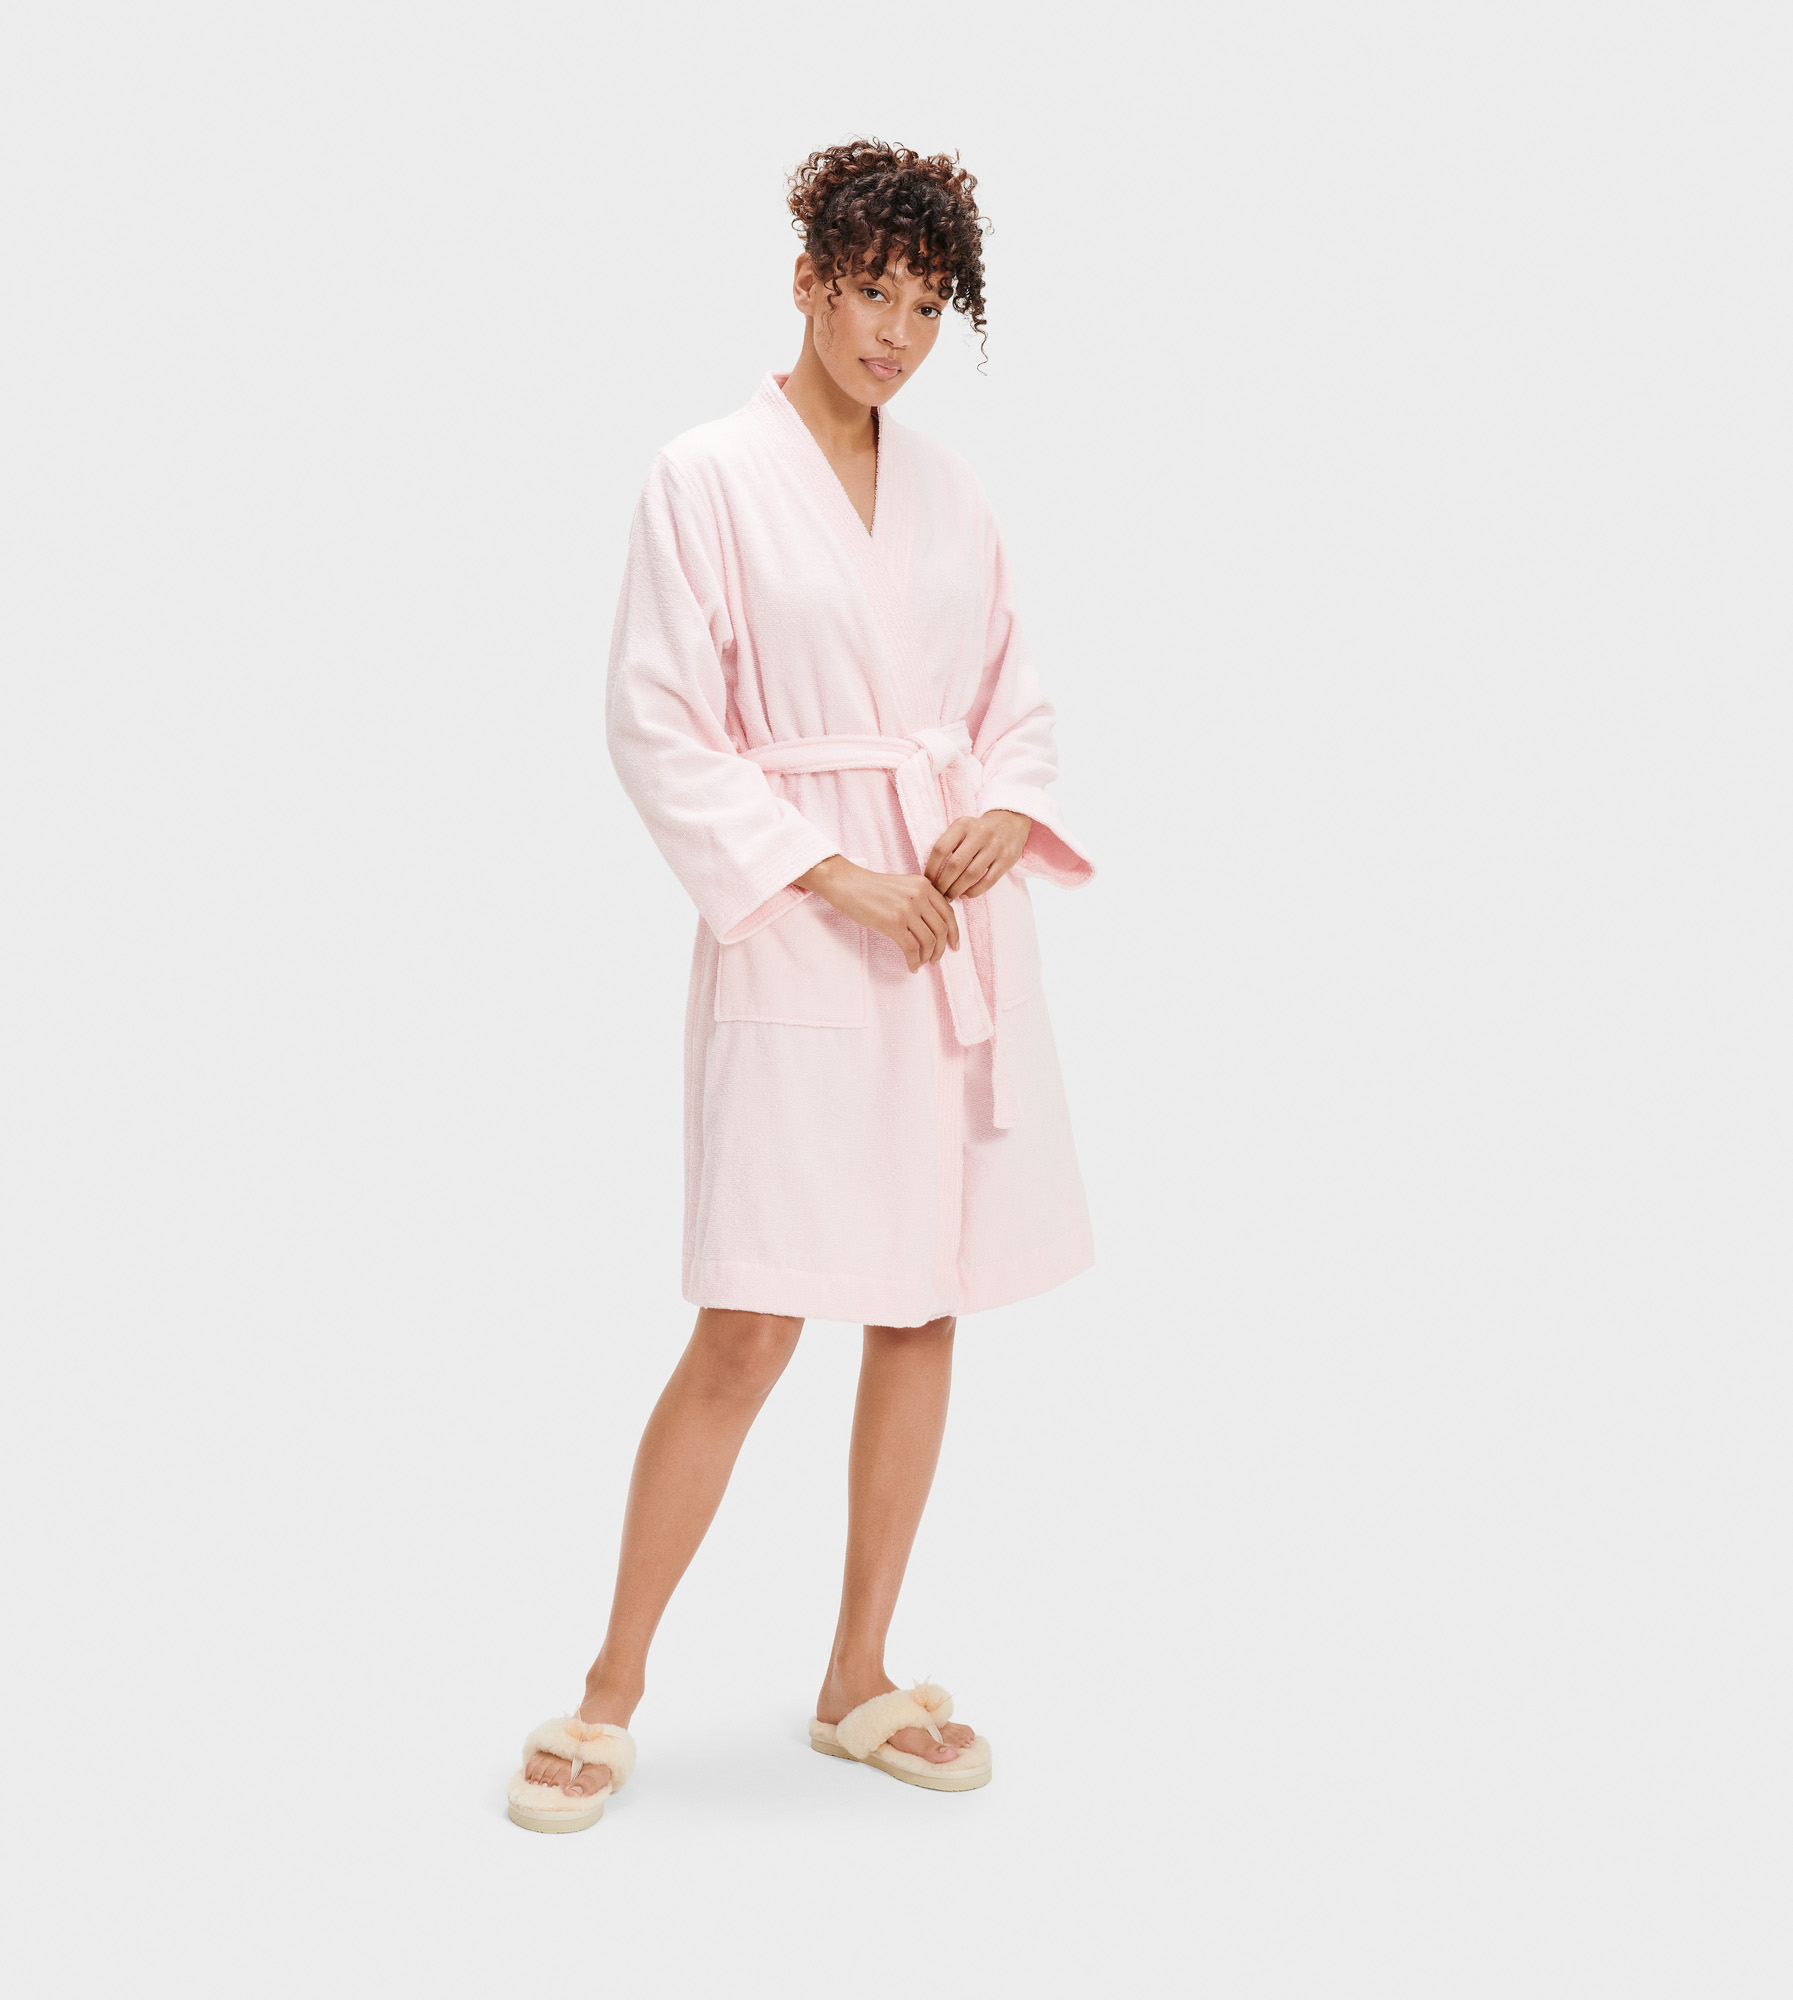 UGG Women's Lorie Terry Robe Cotton Blend Sleepwear in Pink, Size XL/2XL Made from a soft cotton terry knit, this cozy robe is perfect for relaxed weekend mornings. Best paired with fluffy slippers and an espresso. Double loop terry: 100% Cotton. Self-tie. Patch pockets. 39 inch center back length. UGG Women's Lorie Terry Robe Cotton Blend Sleepwear in Pink, Size XL/2XL